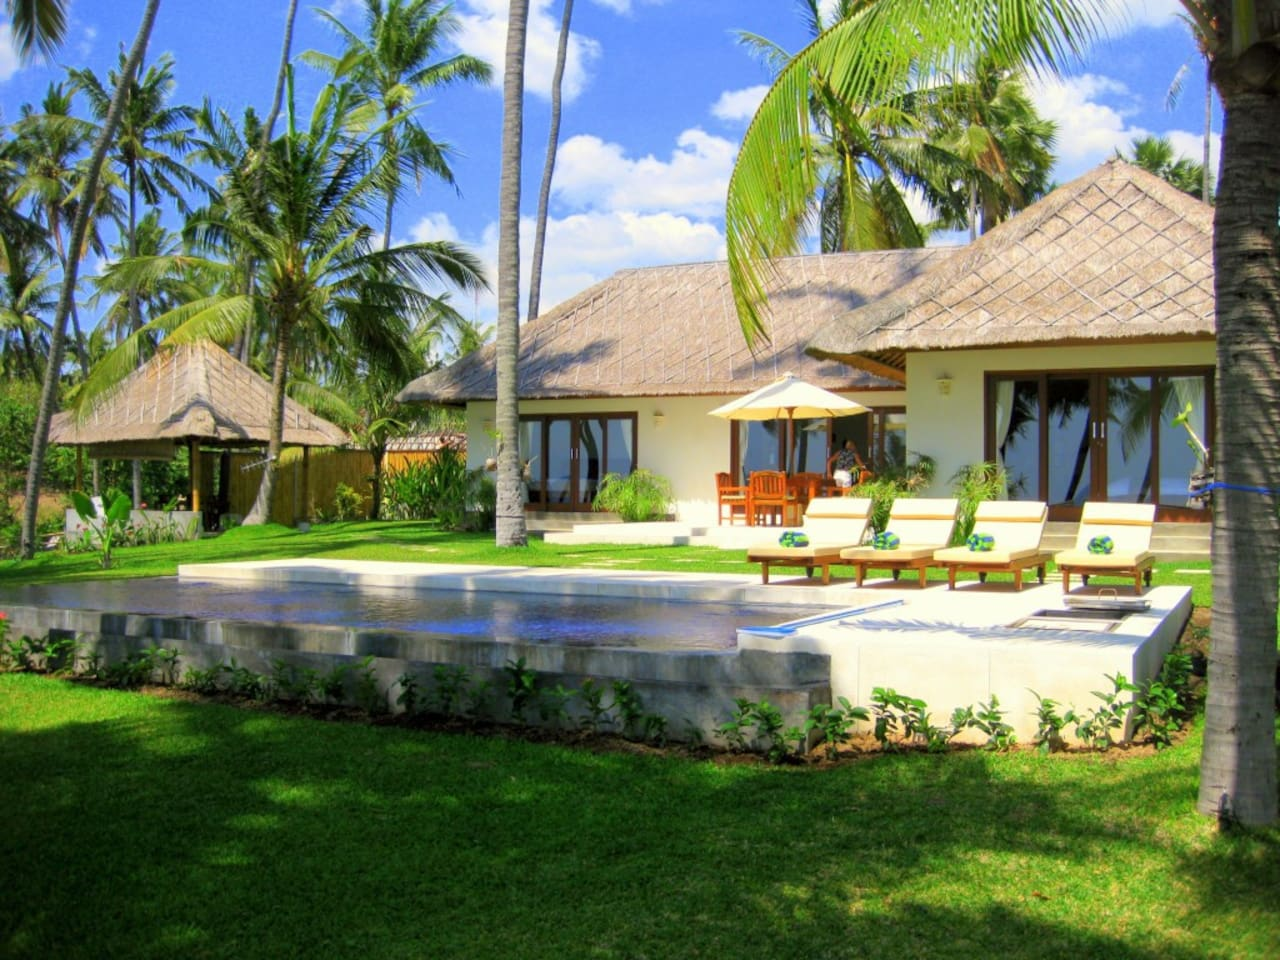 Villa Pantai absolute beach front and private location with swimming pool